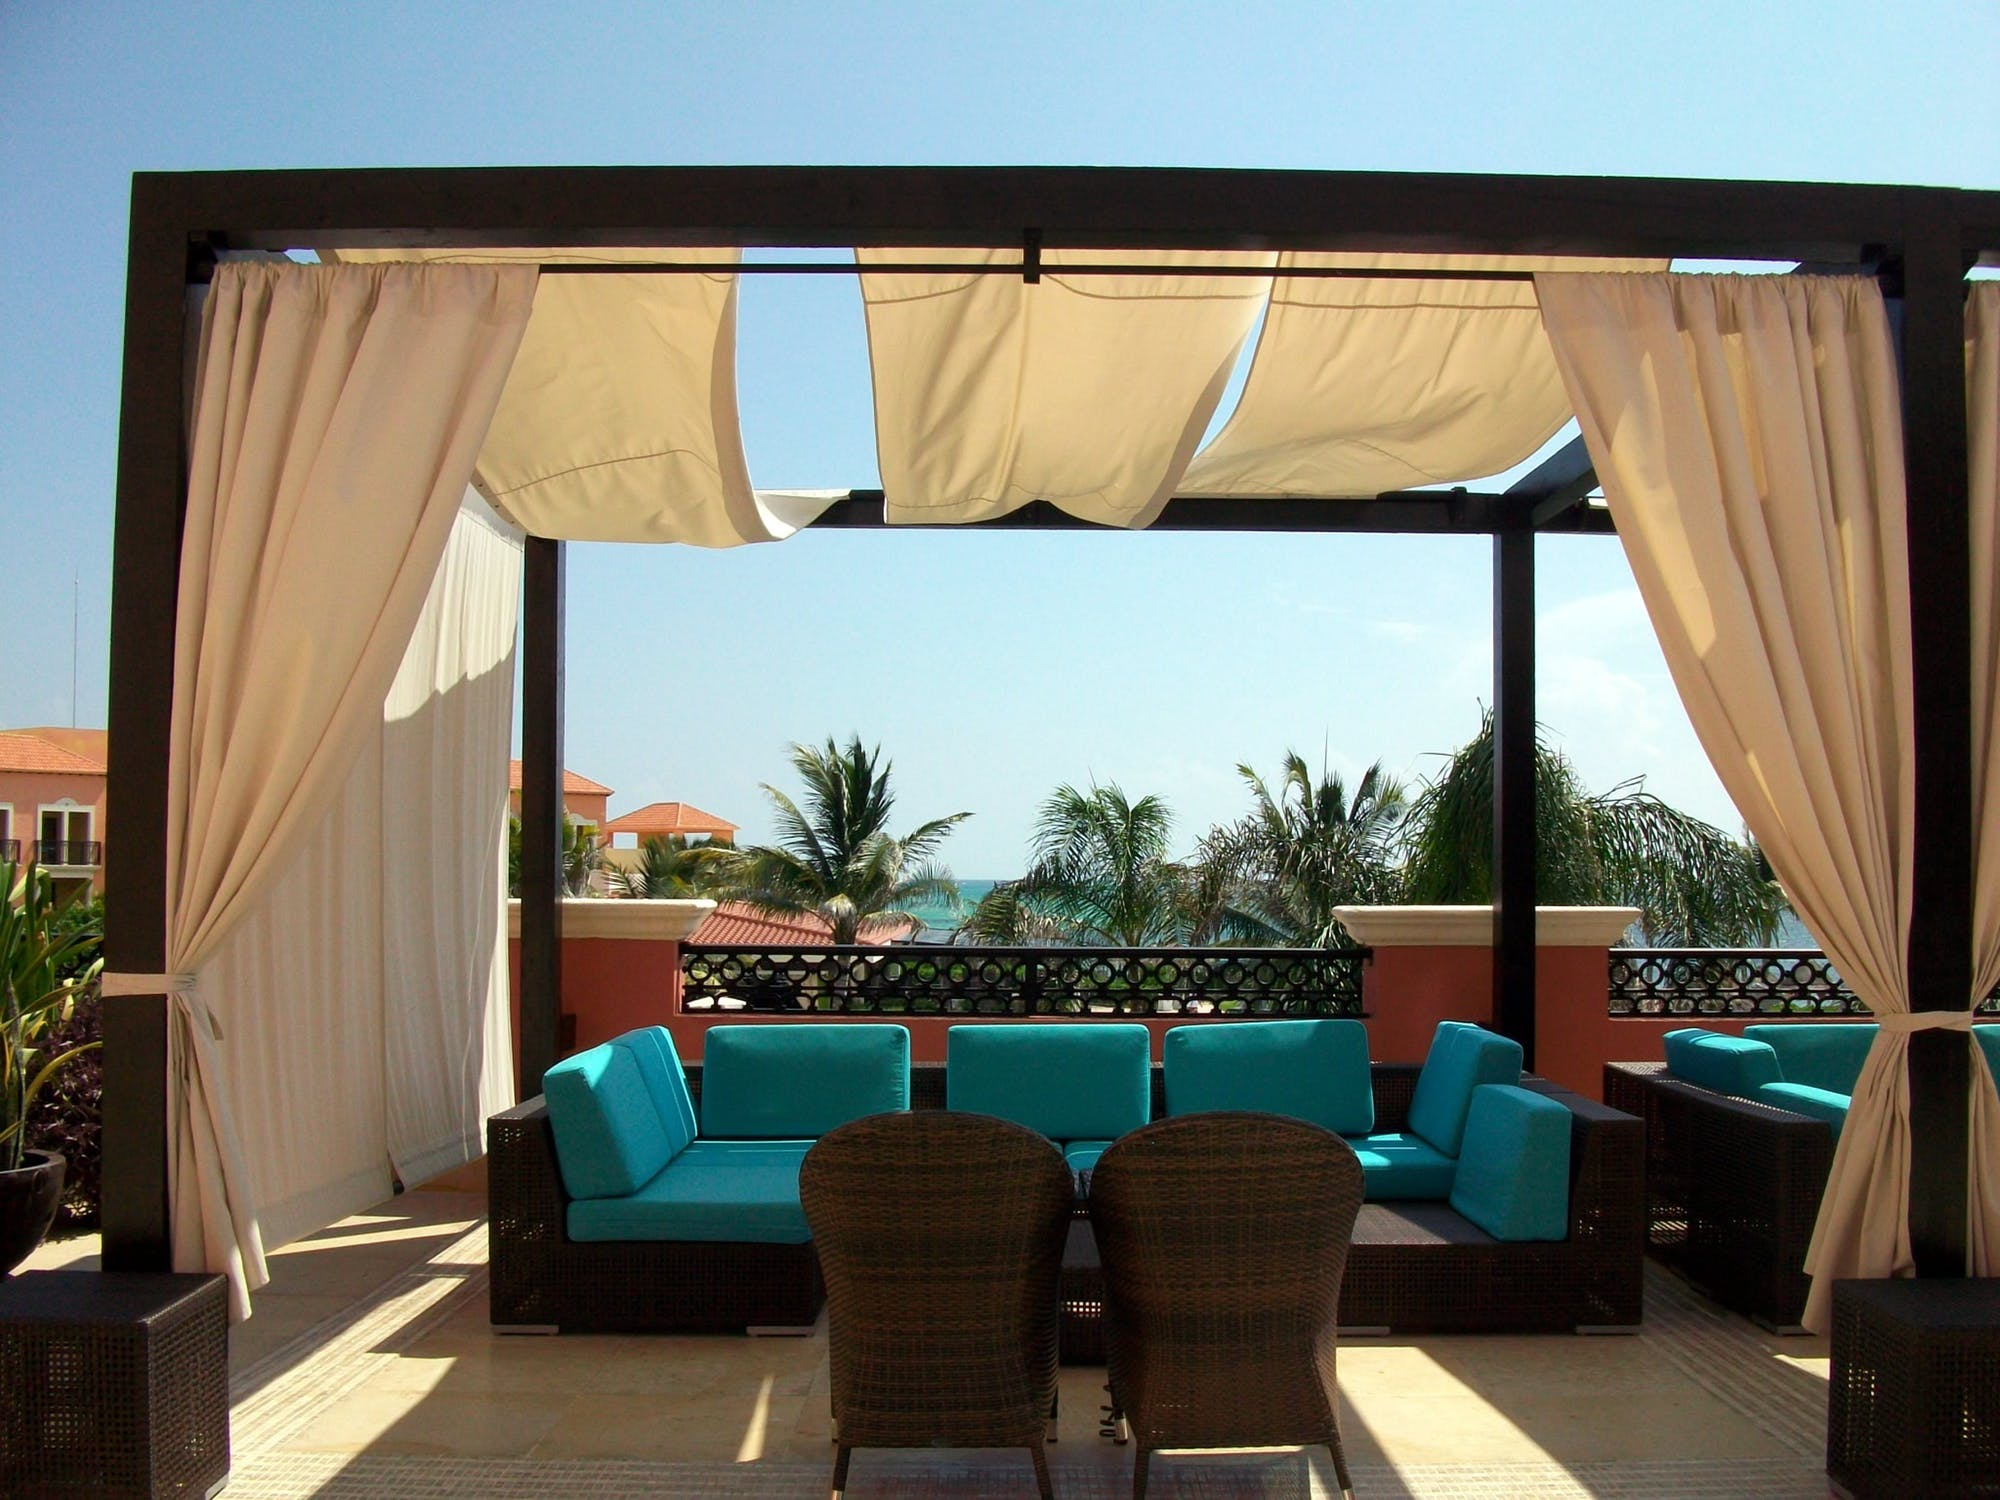 Choosing the Right Patio Awning for Your Home